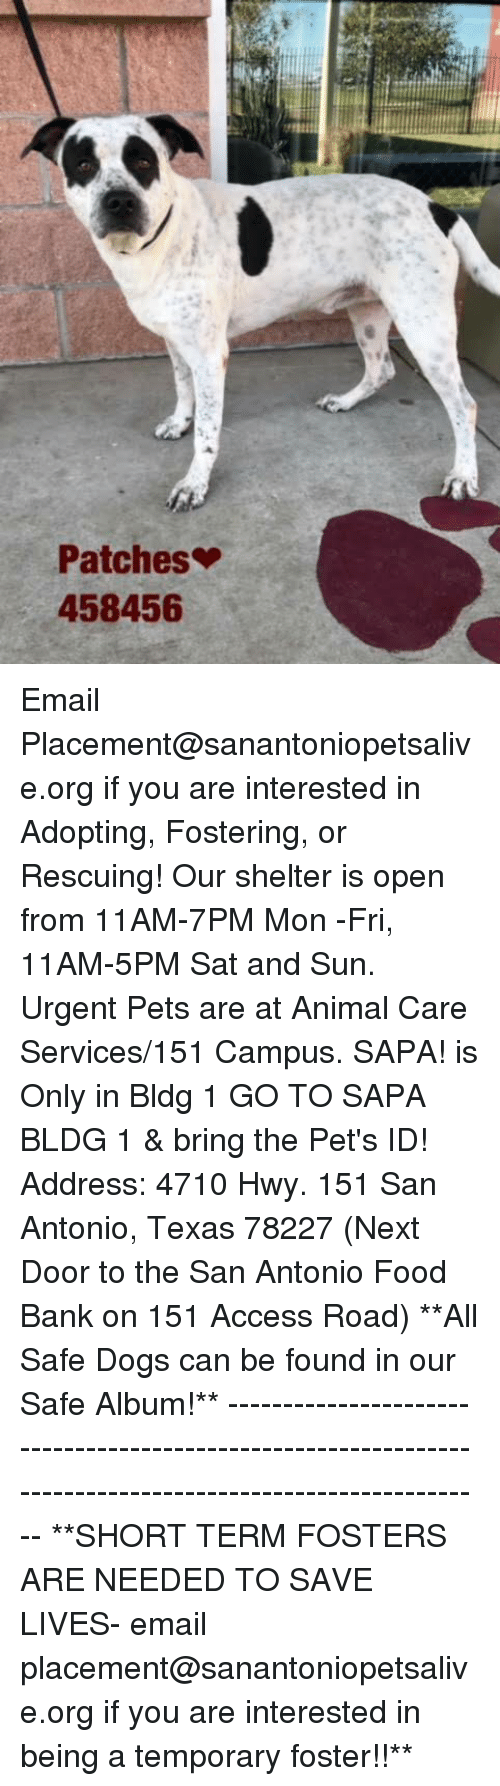 Dogs, Food, and Memes: Patches  458456 Email Placement@sanantoniopetsalive.org if you are interested in Adopting, Fostering, or Rescuing!  Our shelter is open from 11AM-7PM Mon -Fri, 11AM-5PM Sat and Sun.  Urgent Pets are at Animal Care Services/151 Campus. SAPA! is Only in Bldg 1 GO TO SAPA BLDG 1 & bring the Pet's ID! Address: 4710 Hwy. 151 San Antonio, Texas 78227 (Next Door to the San Antonio Food Bank on 151 Access Road)  **All Safe Dogs can be found in our Safe Album!** ---------------------------------------------------------------------------------------------------------- **SHORT TERM FOSTERS ARE NEEDED TO SAVE LIVES- email placement@sanantoniopetsalive.org if you are interested in being a temporary foster!!**